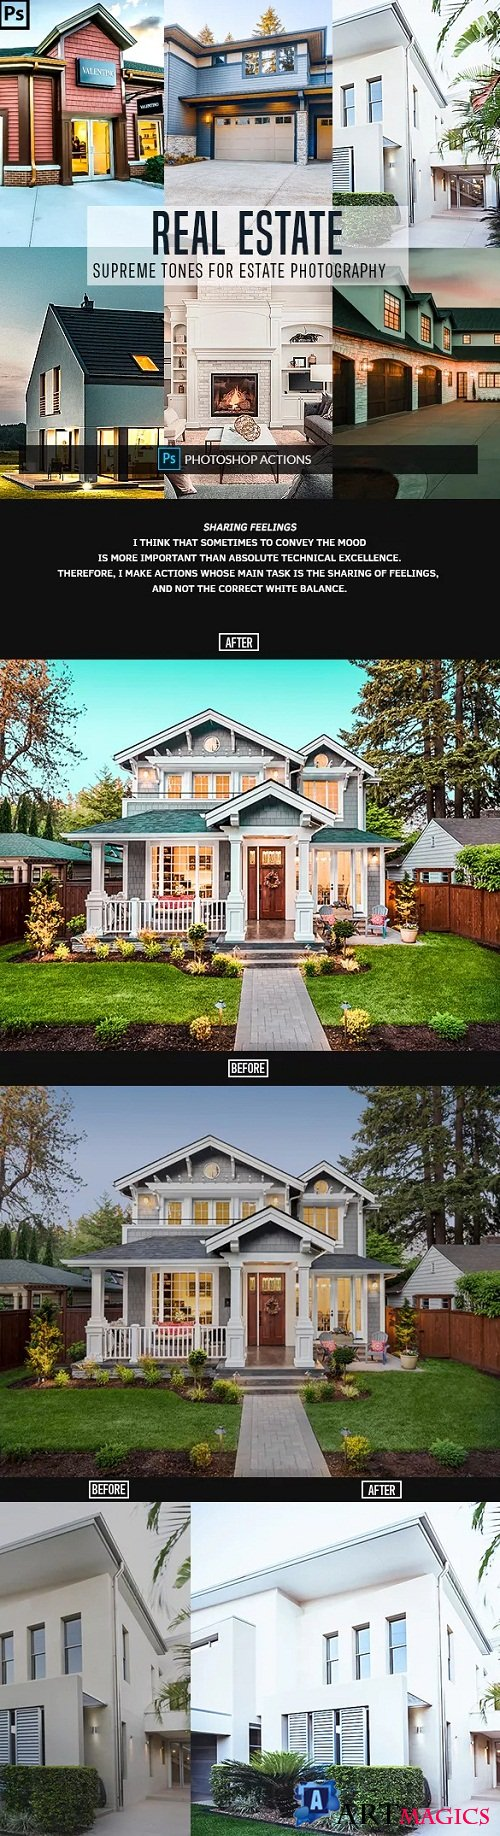 Real Estate Photoshop Actions 23152813